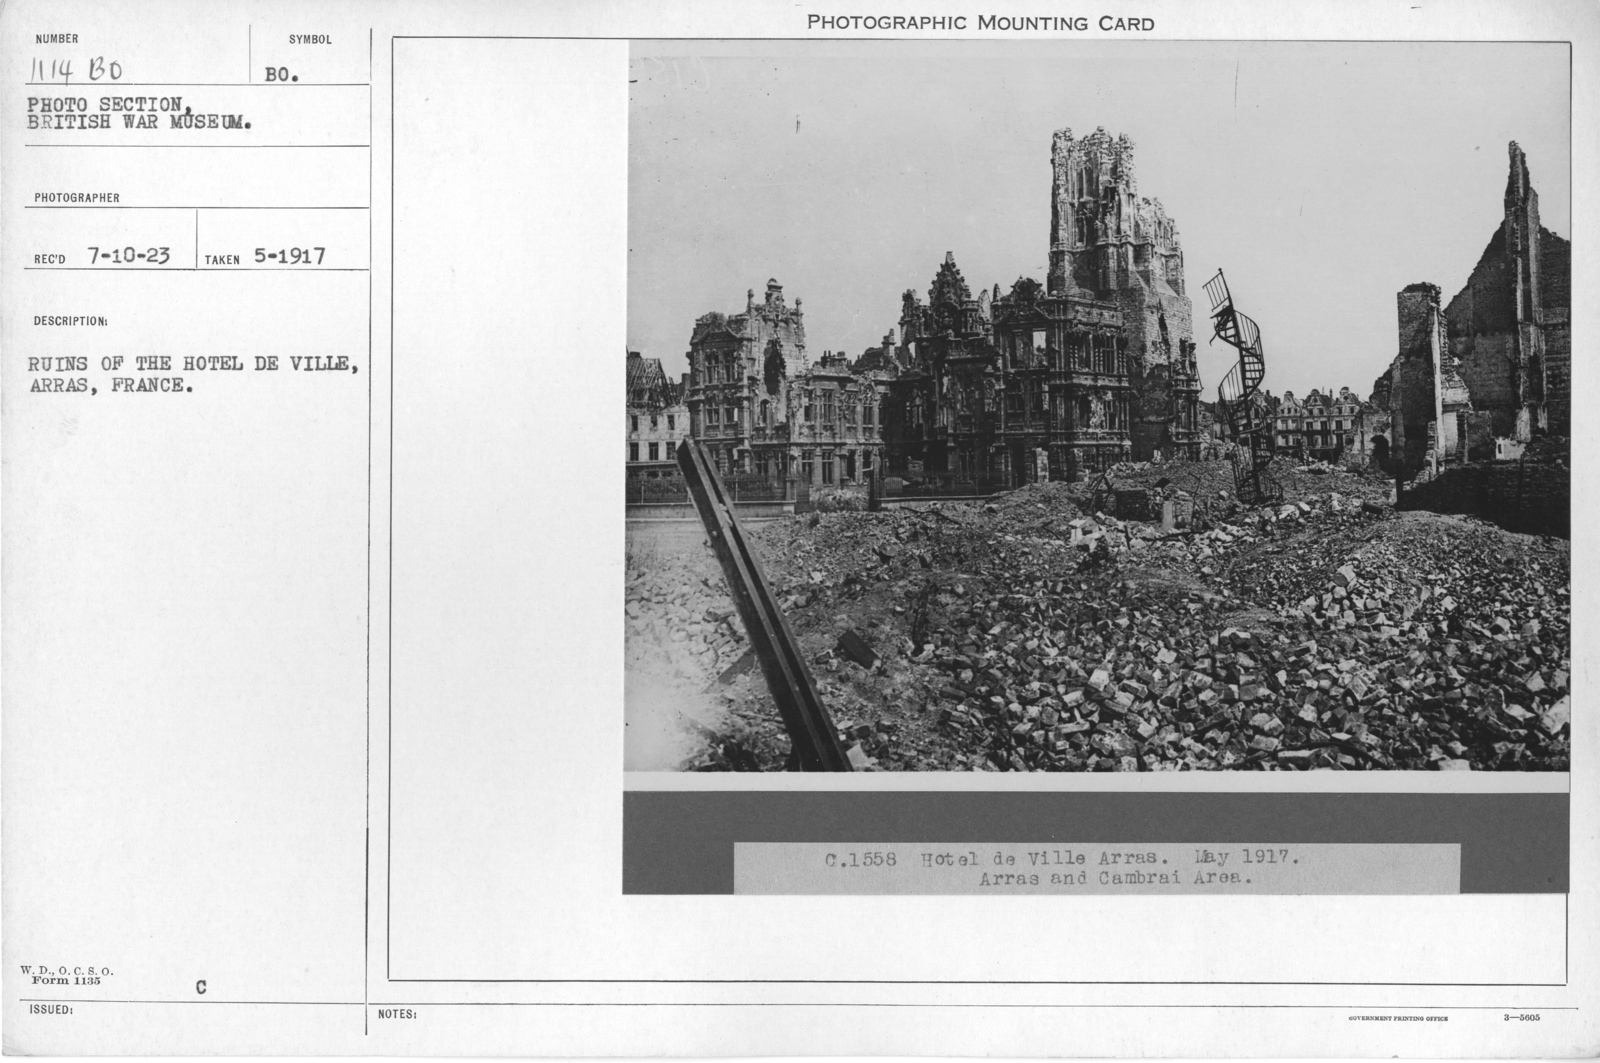 Ruins of the Hotel De Ville, Arras, France